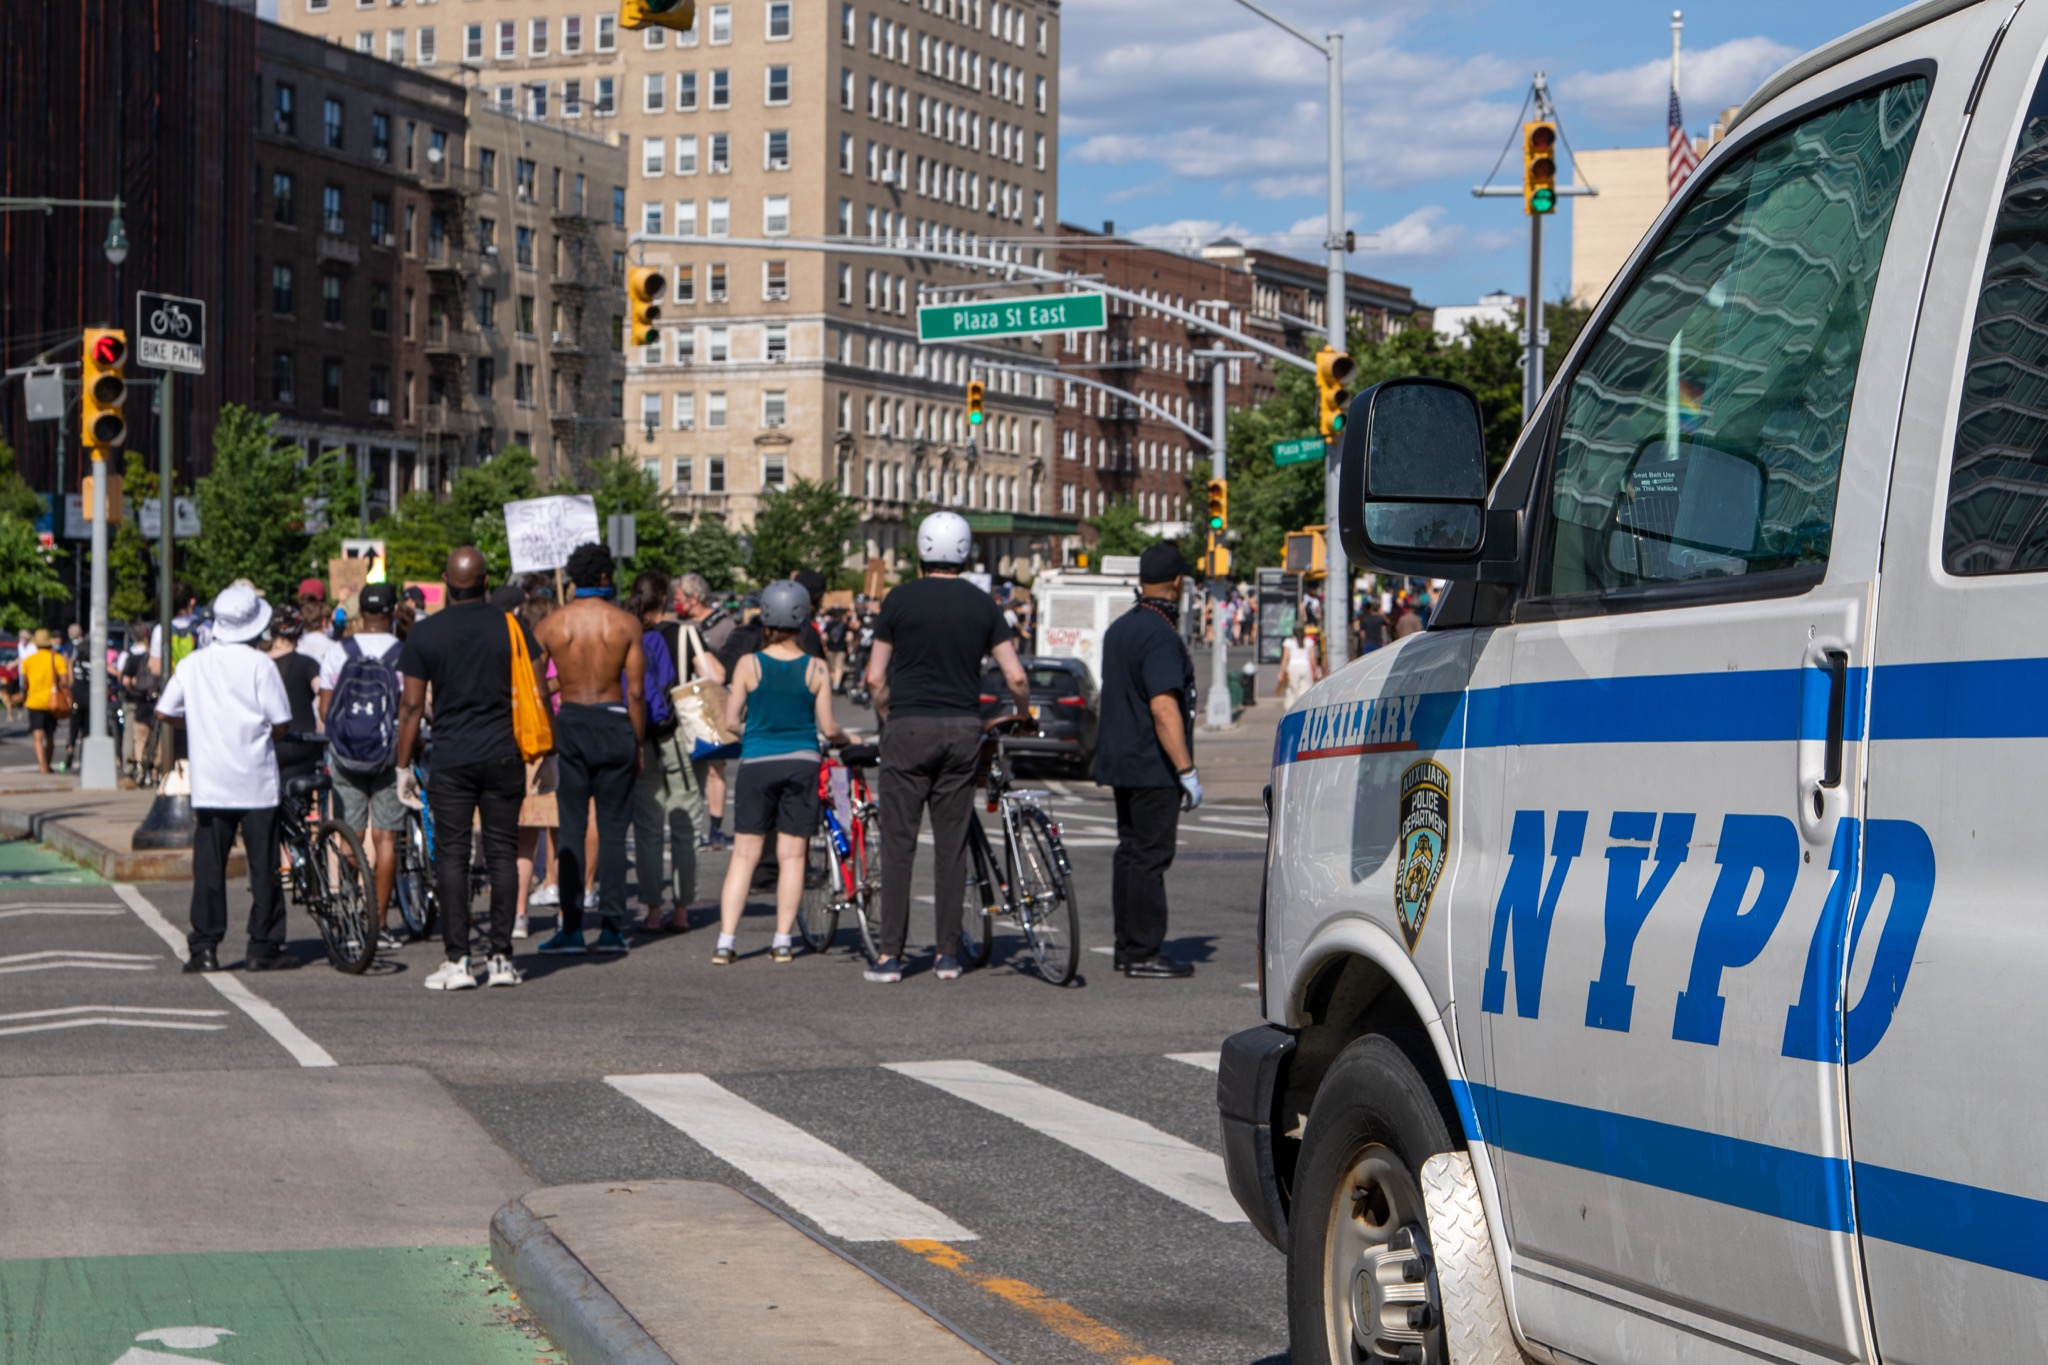 WATCH: Protester Pulled Into Unmarked Van; NYPD Issues Statement